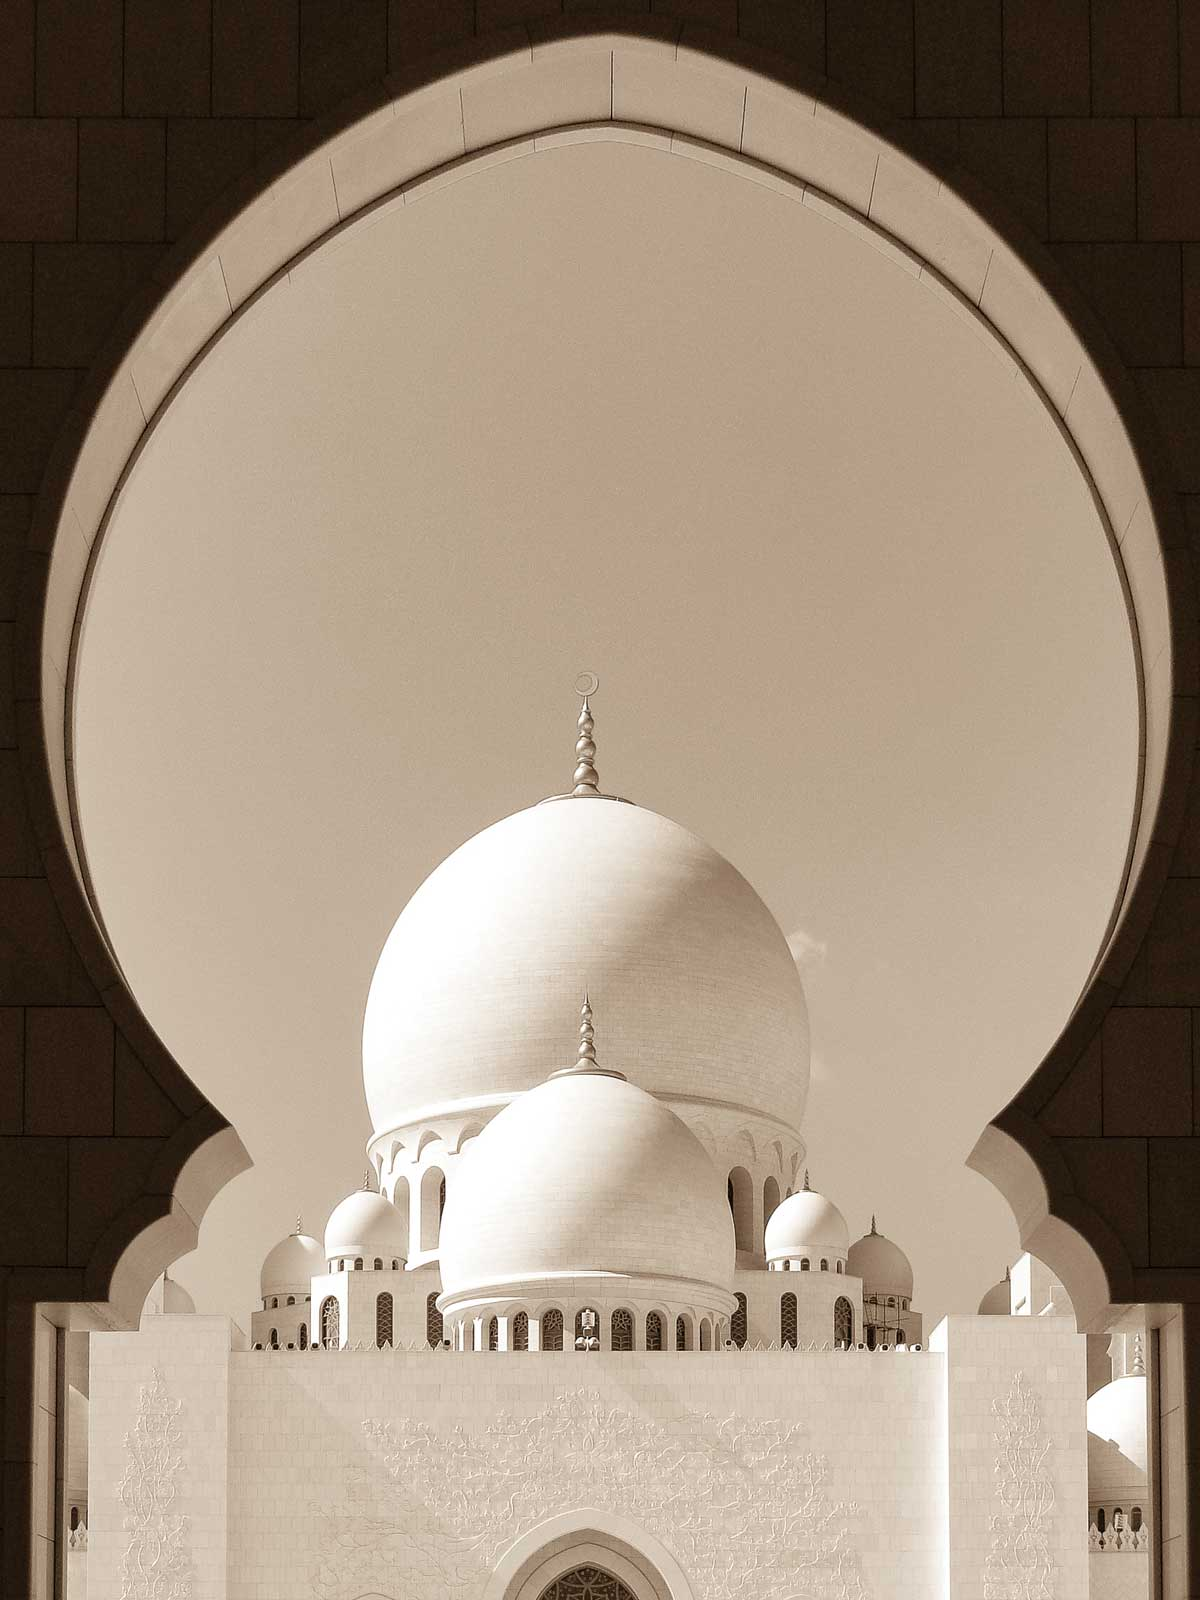 Sheikh Zayed Grand Mosque, Abu Dhabi - United Arab Emirates